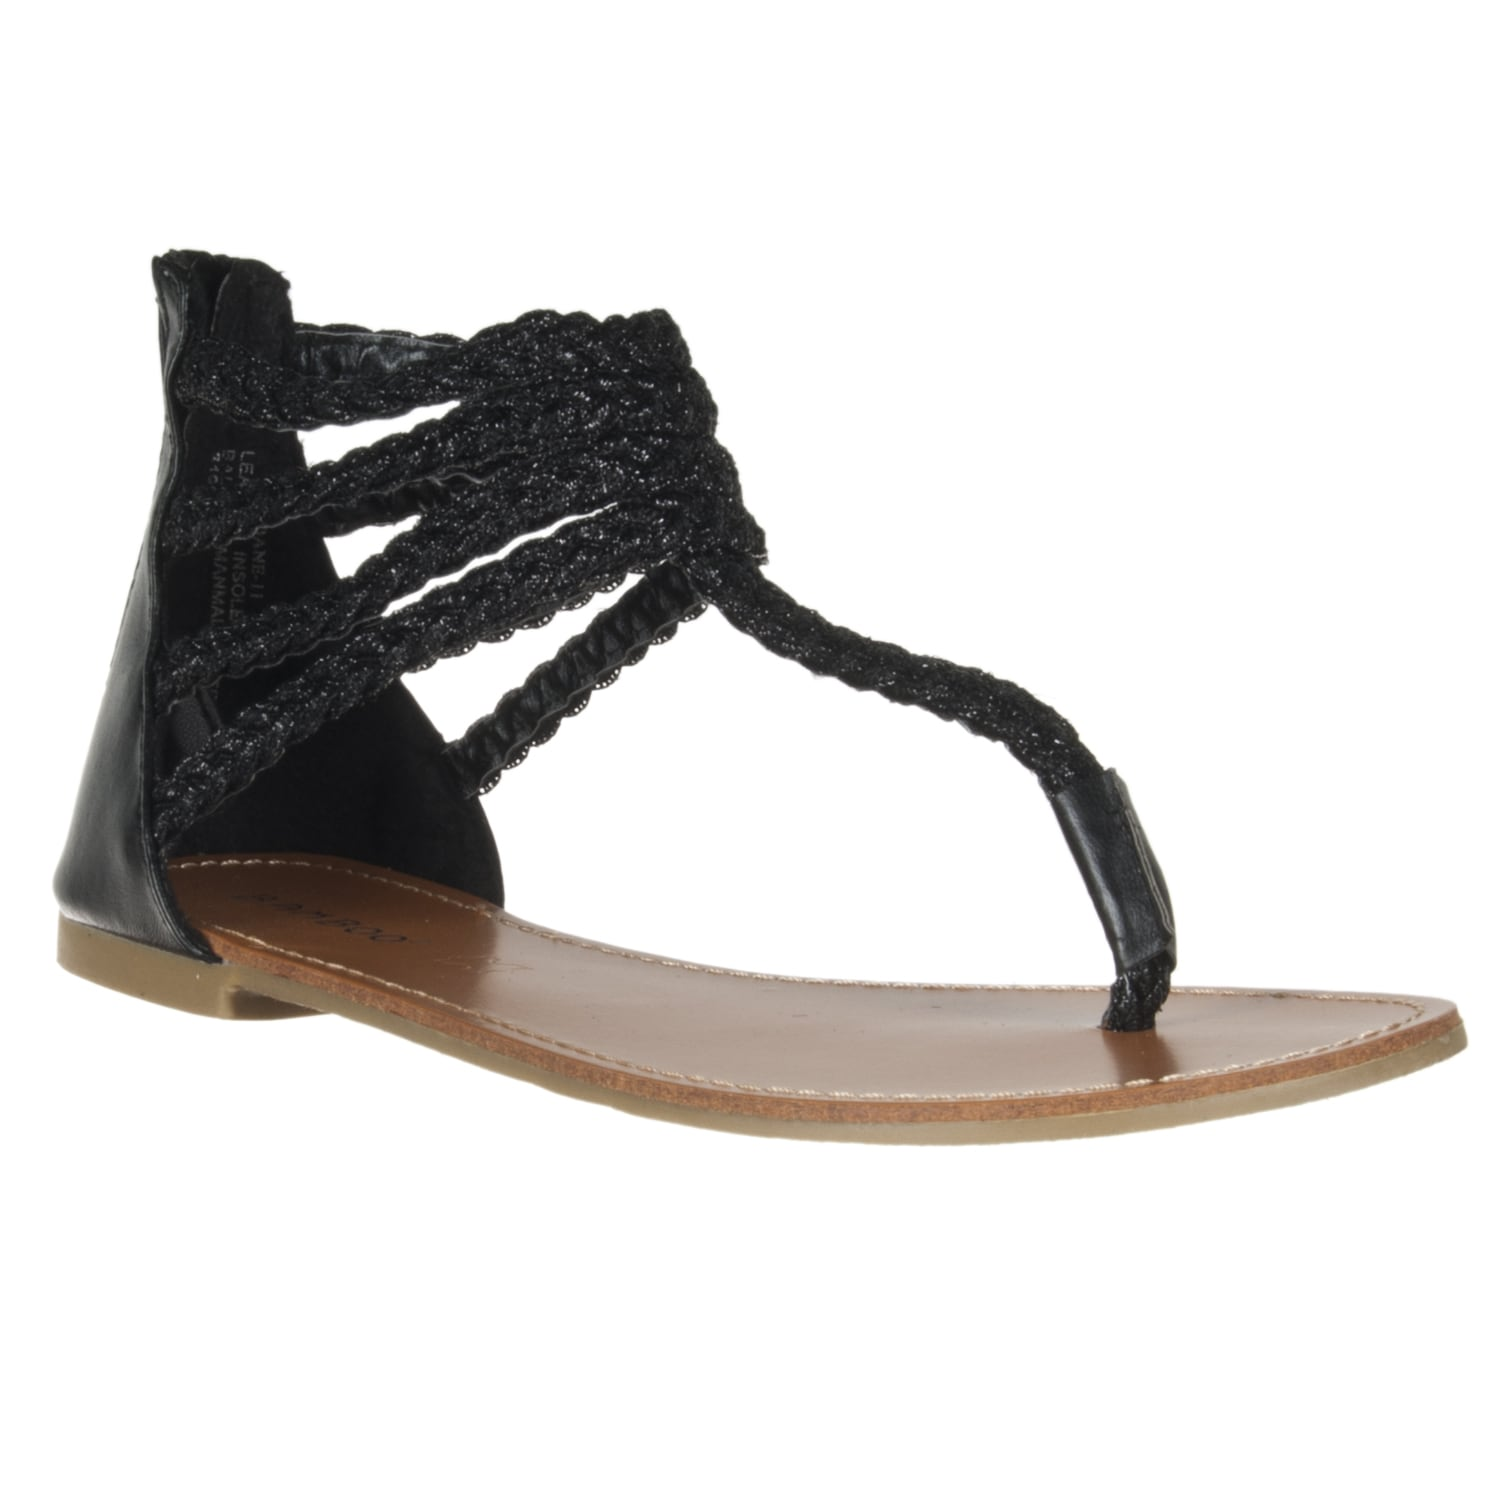 Riverberry Women's 'Sloane' Black Gladiator Sandal - Thumbnail 0